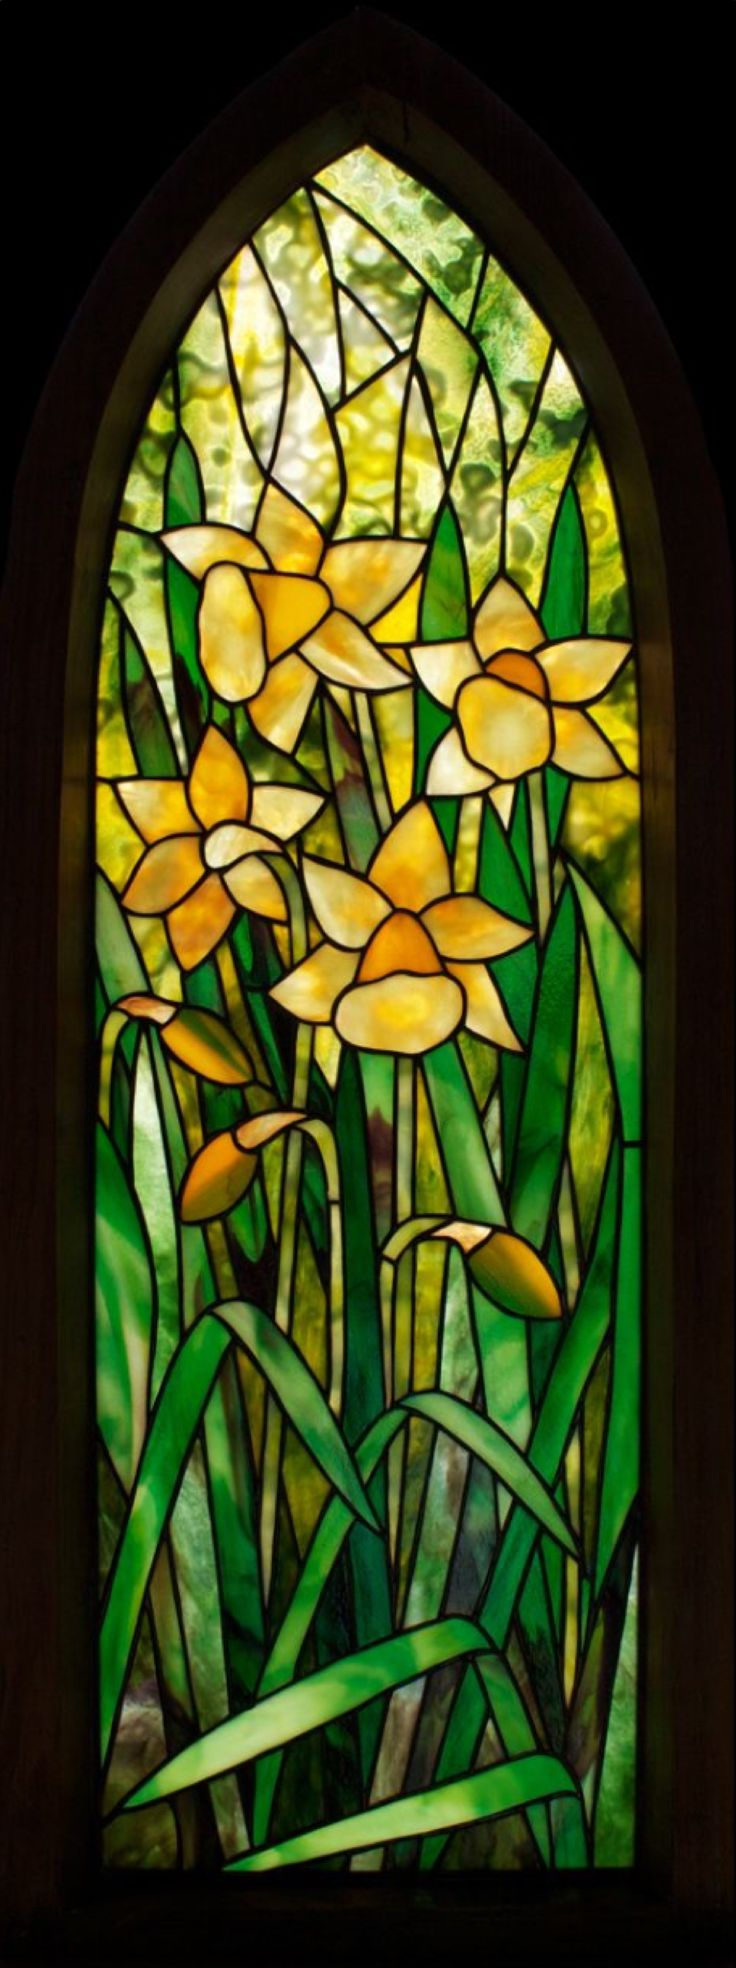 I Always Wanted To Design A Daffodil Stained Glass Window